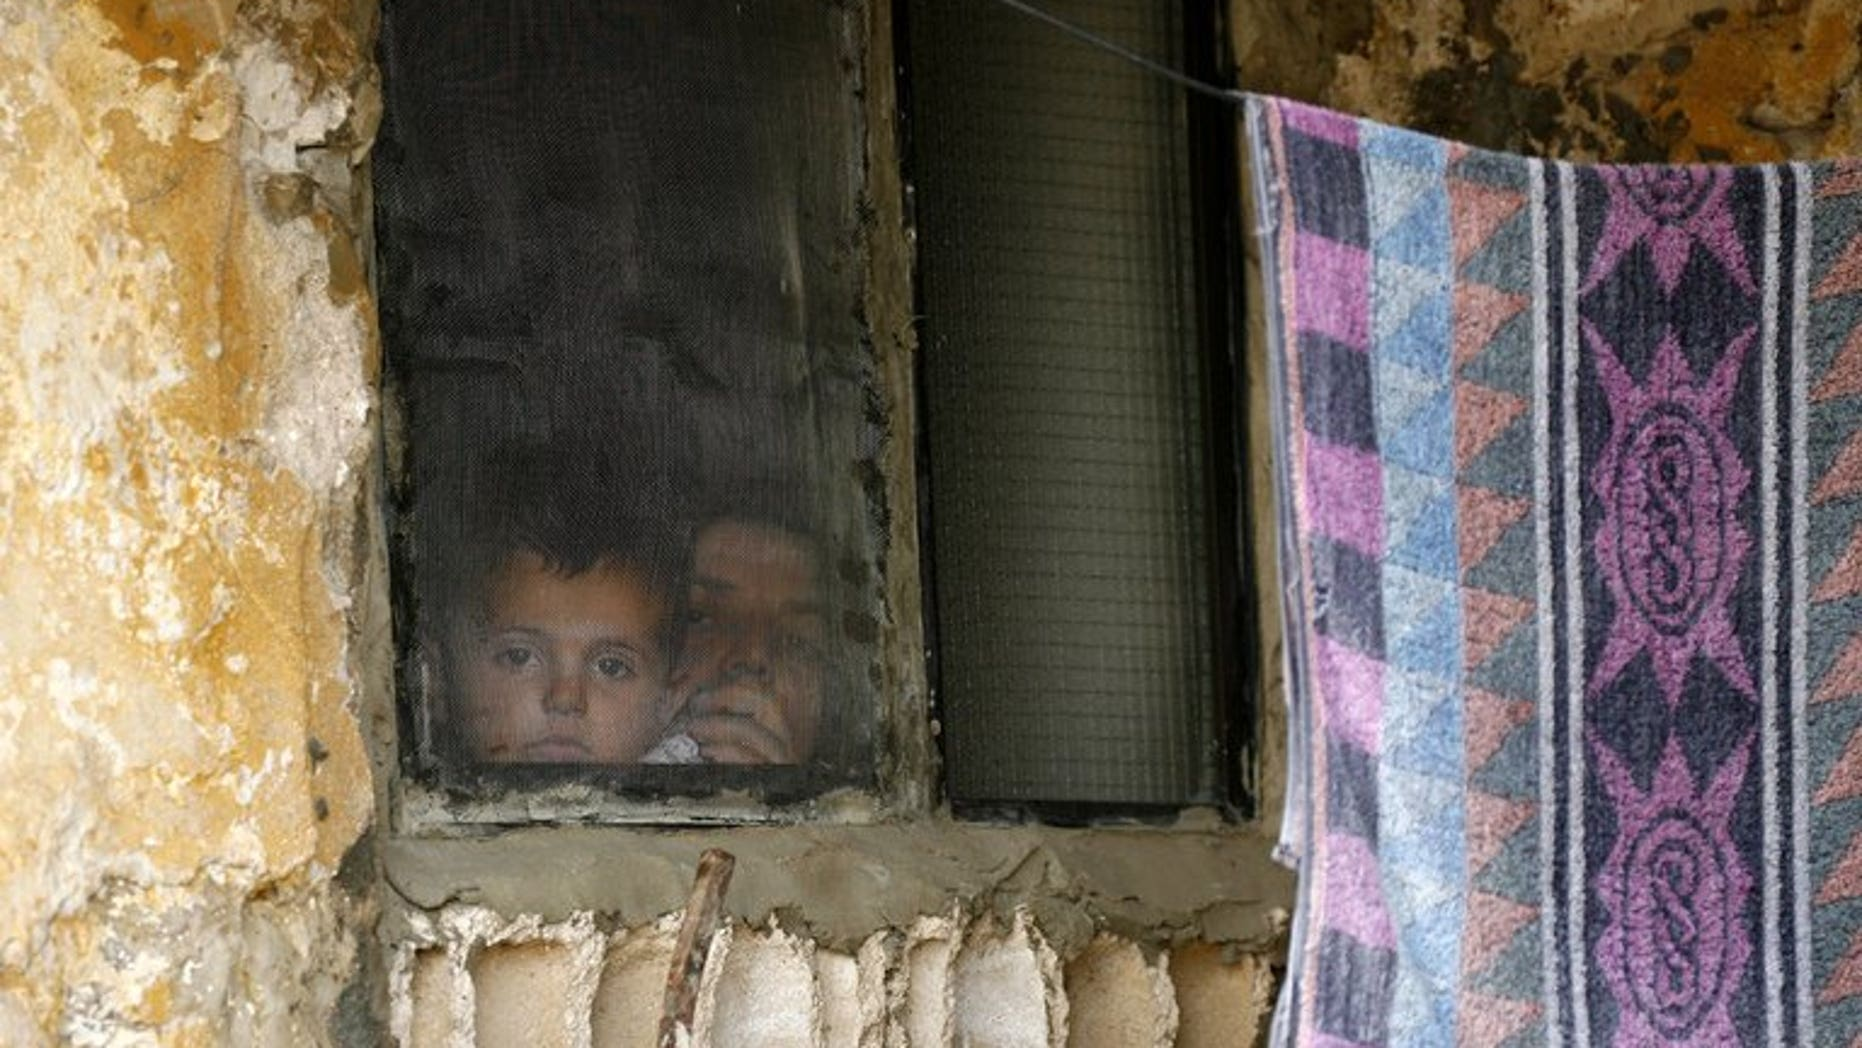 A Syrian woman and her child look out of a window at a refugee camp in the Lebanese town of Alman on June 20, 2013. Two Syrian refugee children in Lebanon suffocated to death overnight in a fire started by a lit candle during a power outage, Lebanon's state news agency reported on Friday.